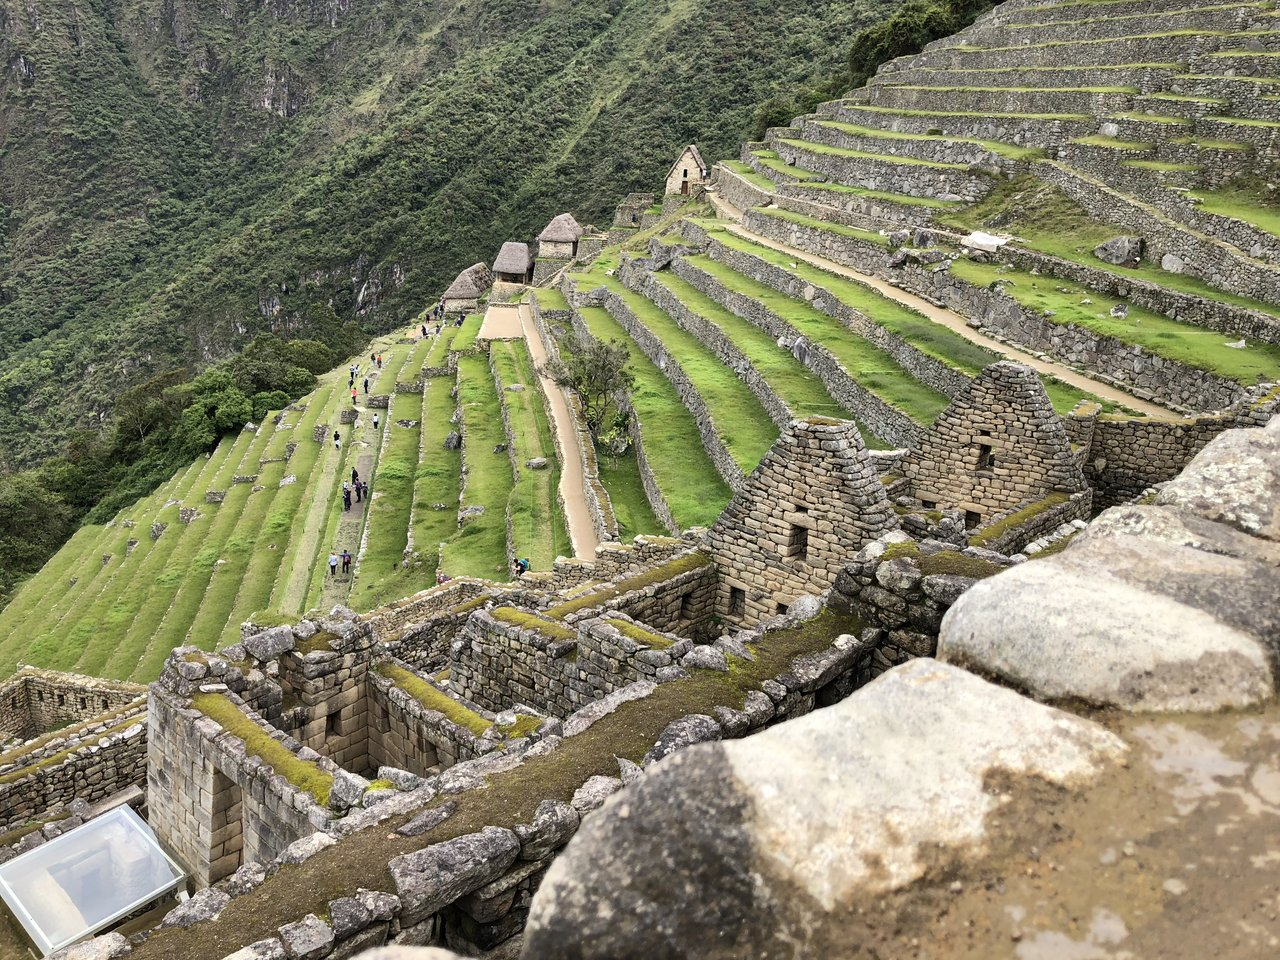 The beautiful terraces | Photo taken by Susan D